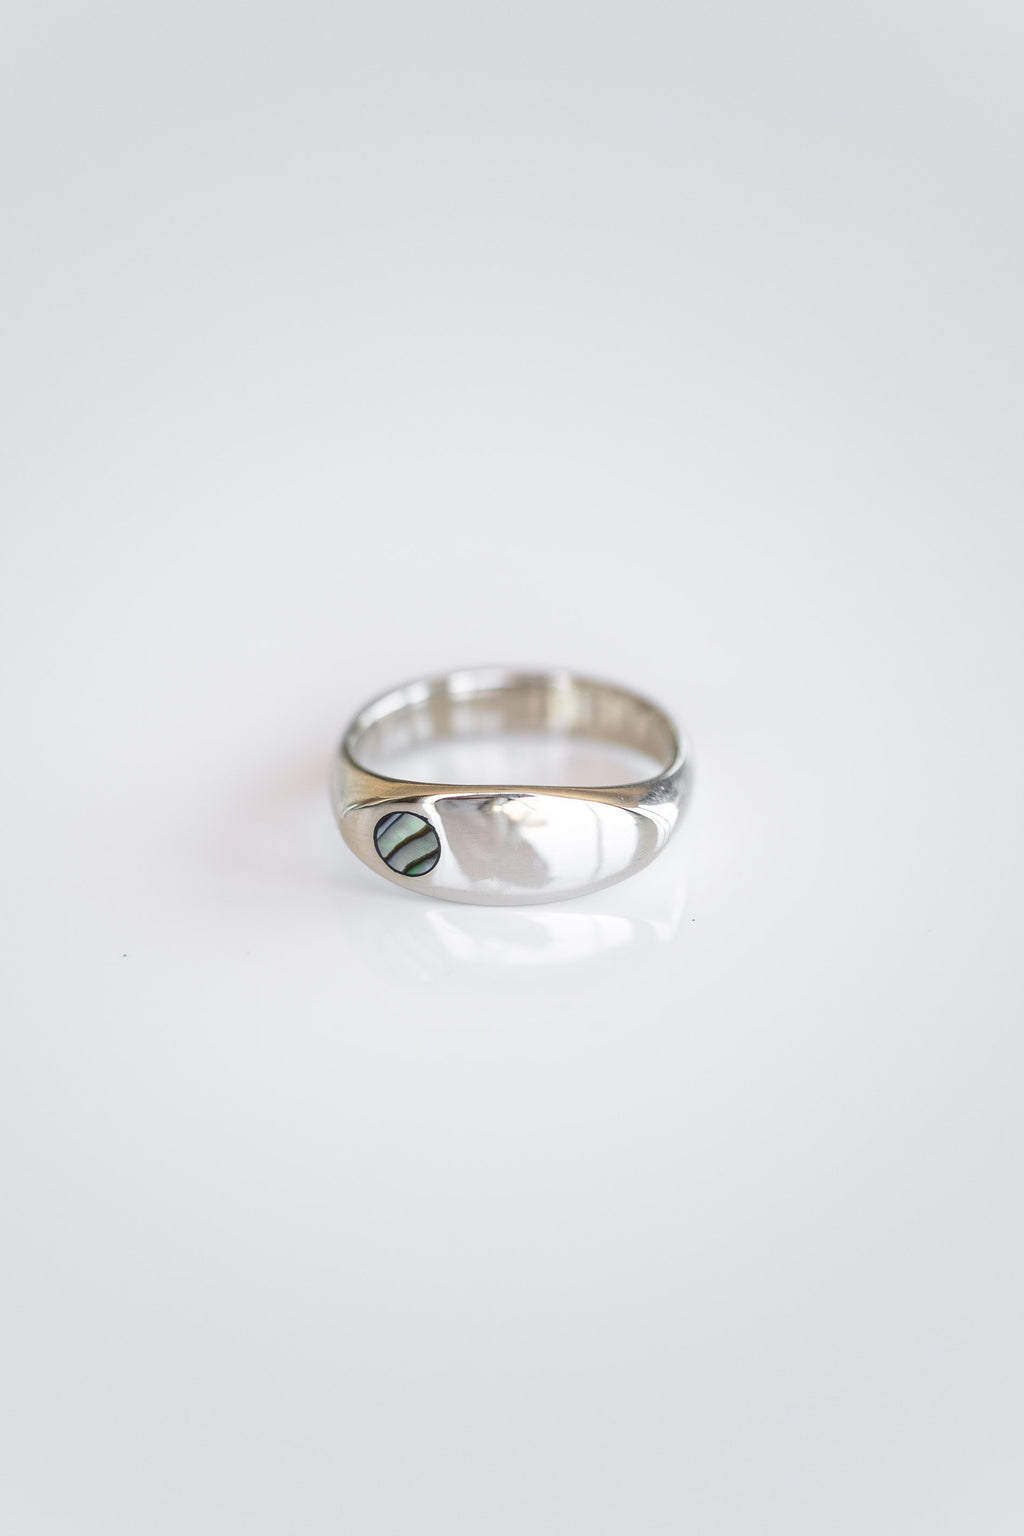 10K WHITE GOLD + ABALONE MARGAUX RING